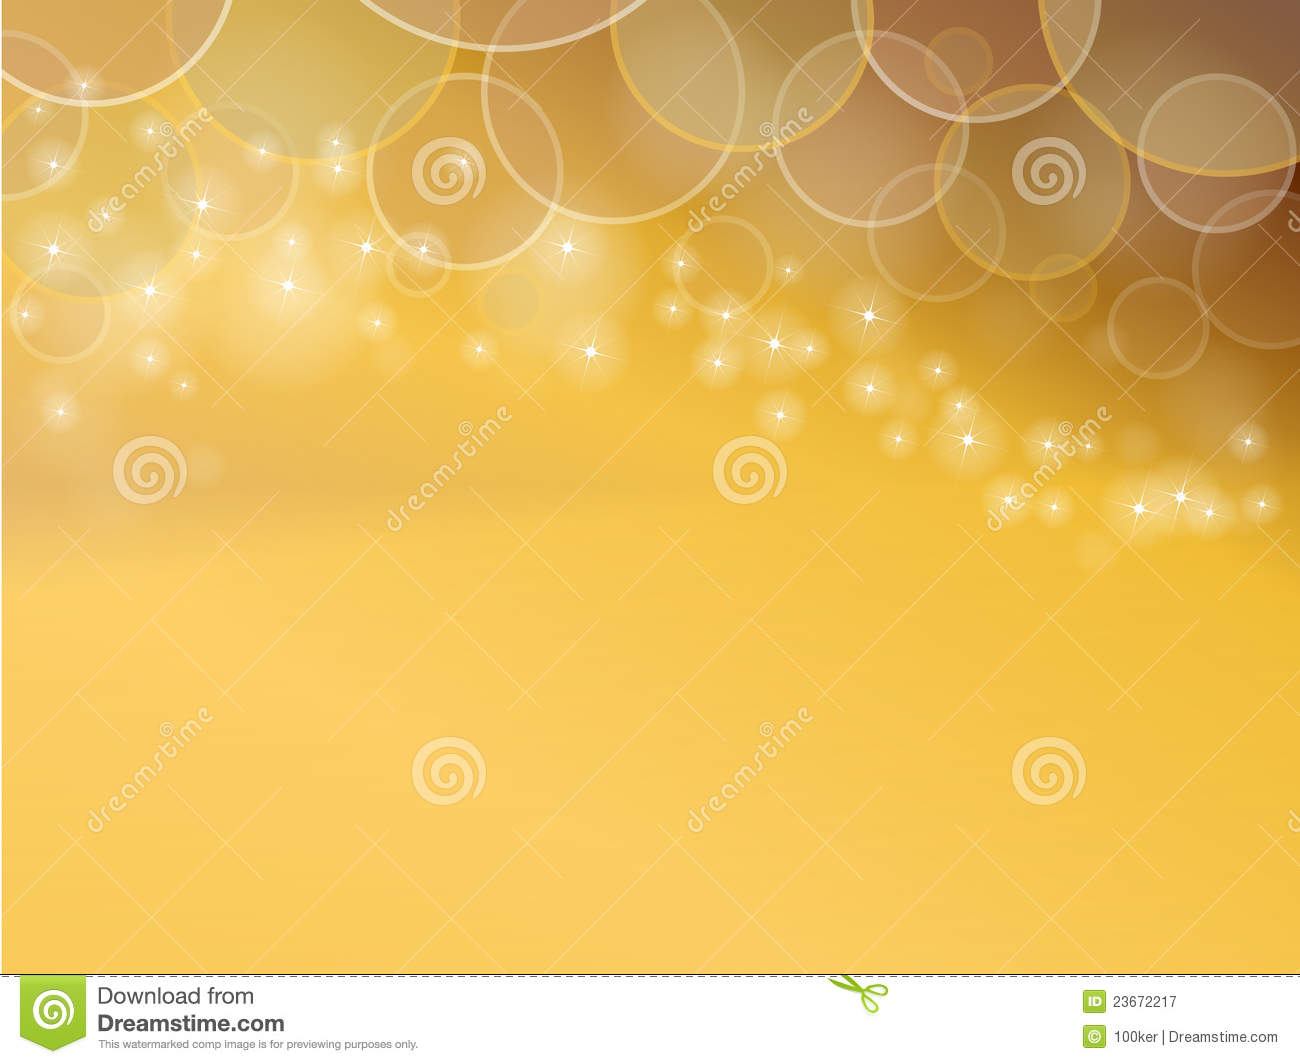 Beige Color Abstract Backgrounds Planet And Star Royalty